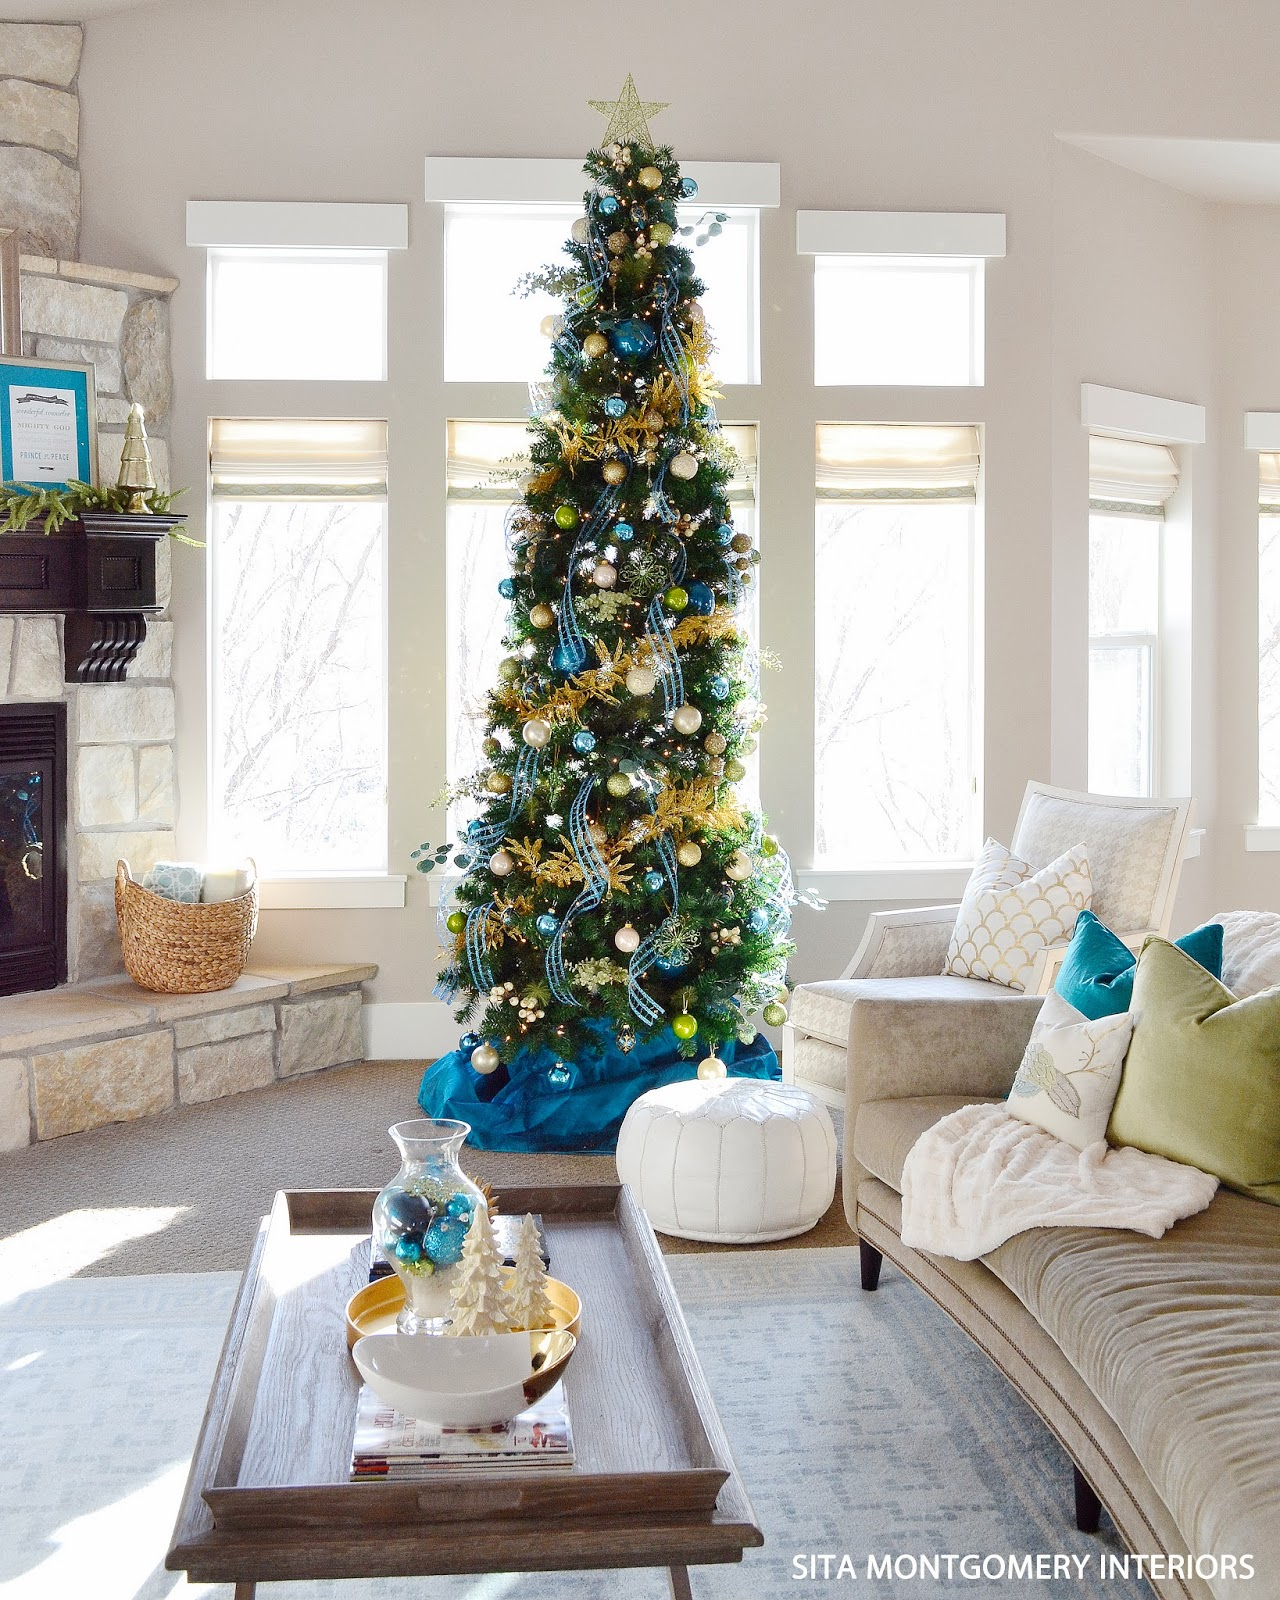 Sita Montgomery Interiors: Sita Montgomery Interiors: My 2013 Holiday Home